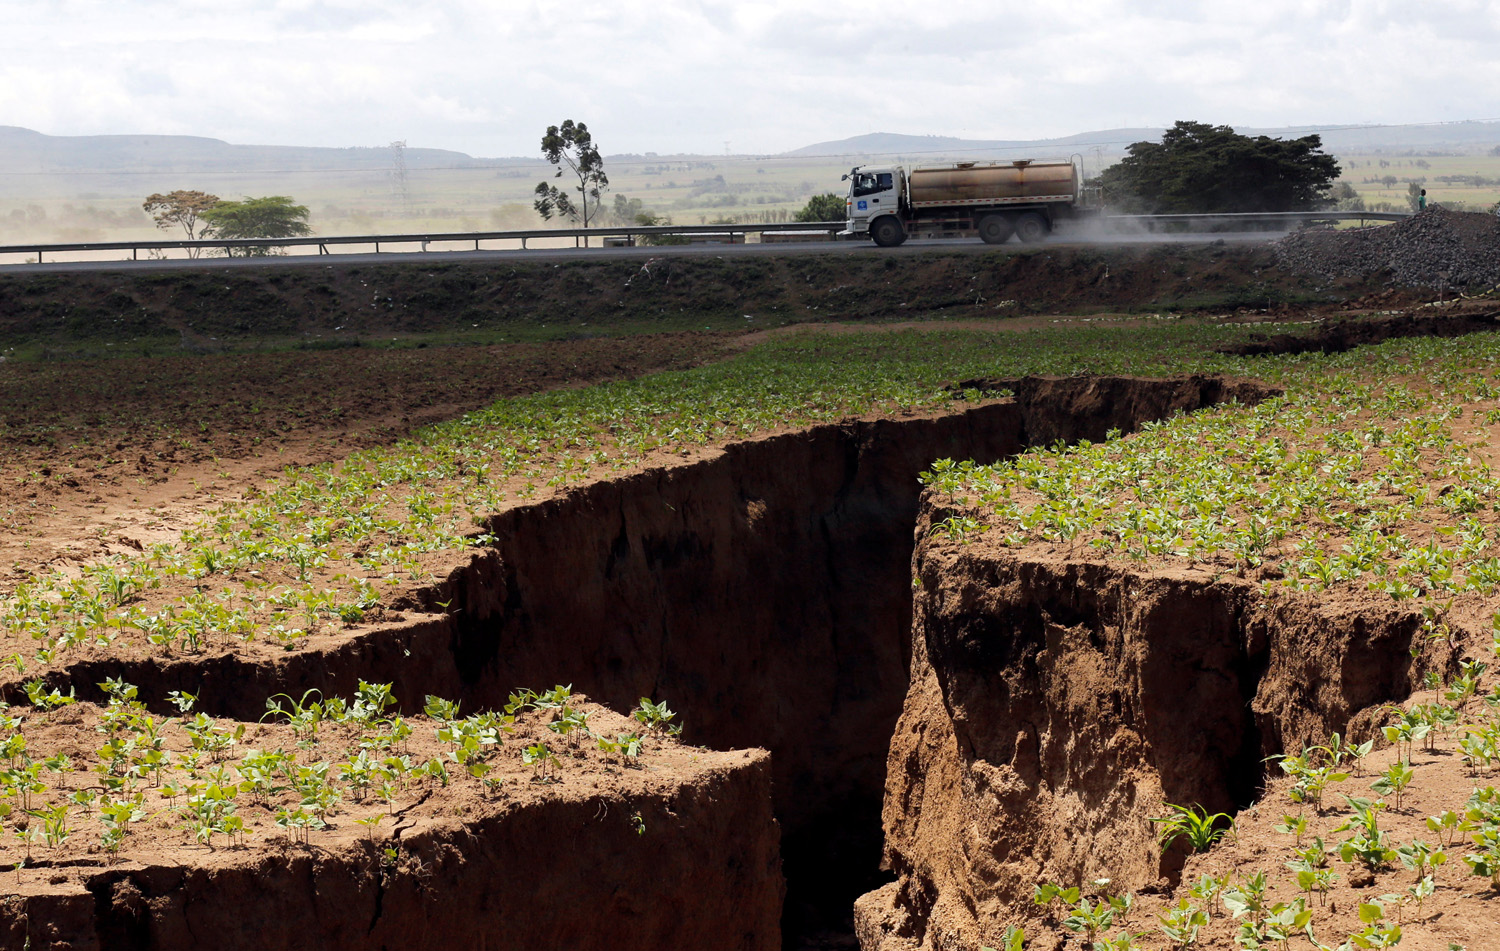 A tanker drives near a chasm suspected to have been caused by a heavy downpour along an underground fault-line near the Rift Valley town of Mai-Mahiu, Kenya March 28, 2018. Picture taken March 28, 2018. REUTERS/Thomas Mukoya